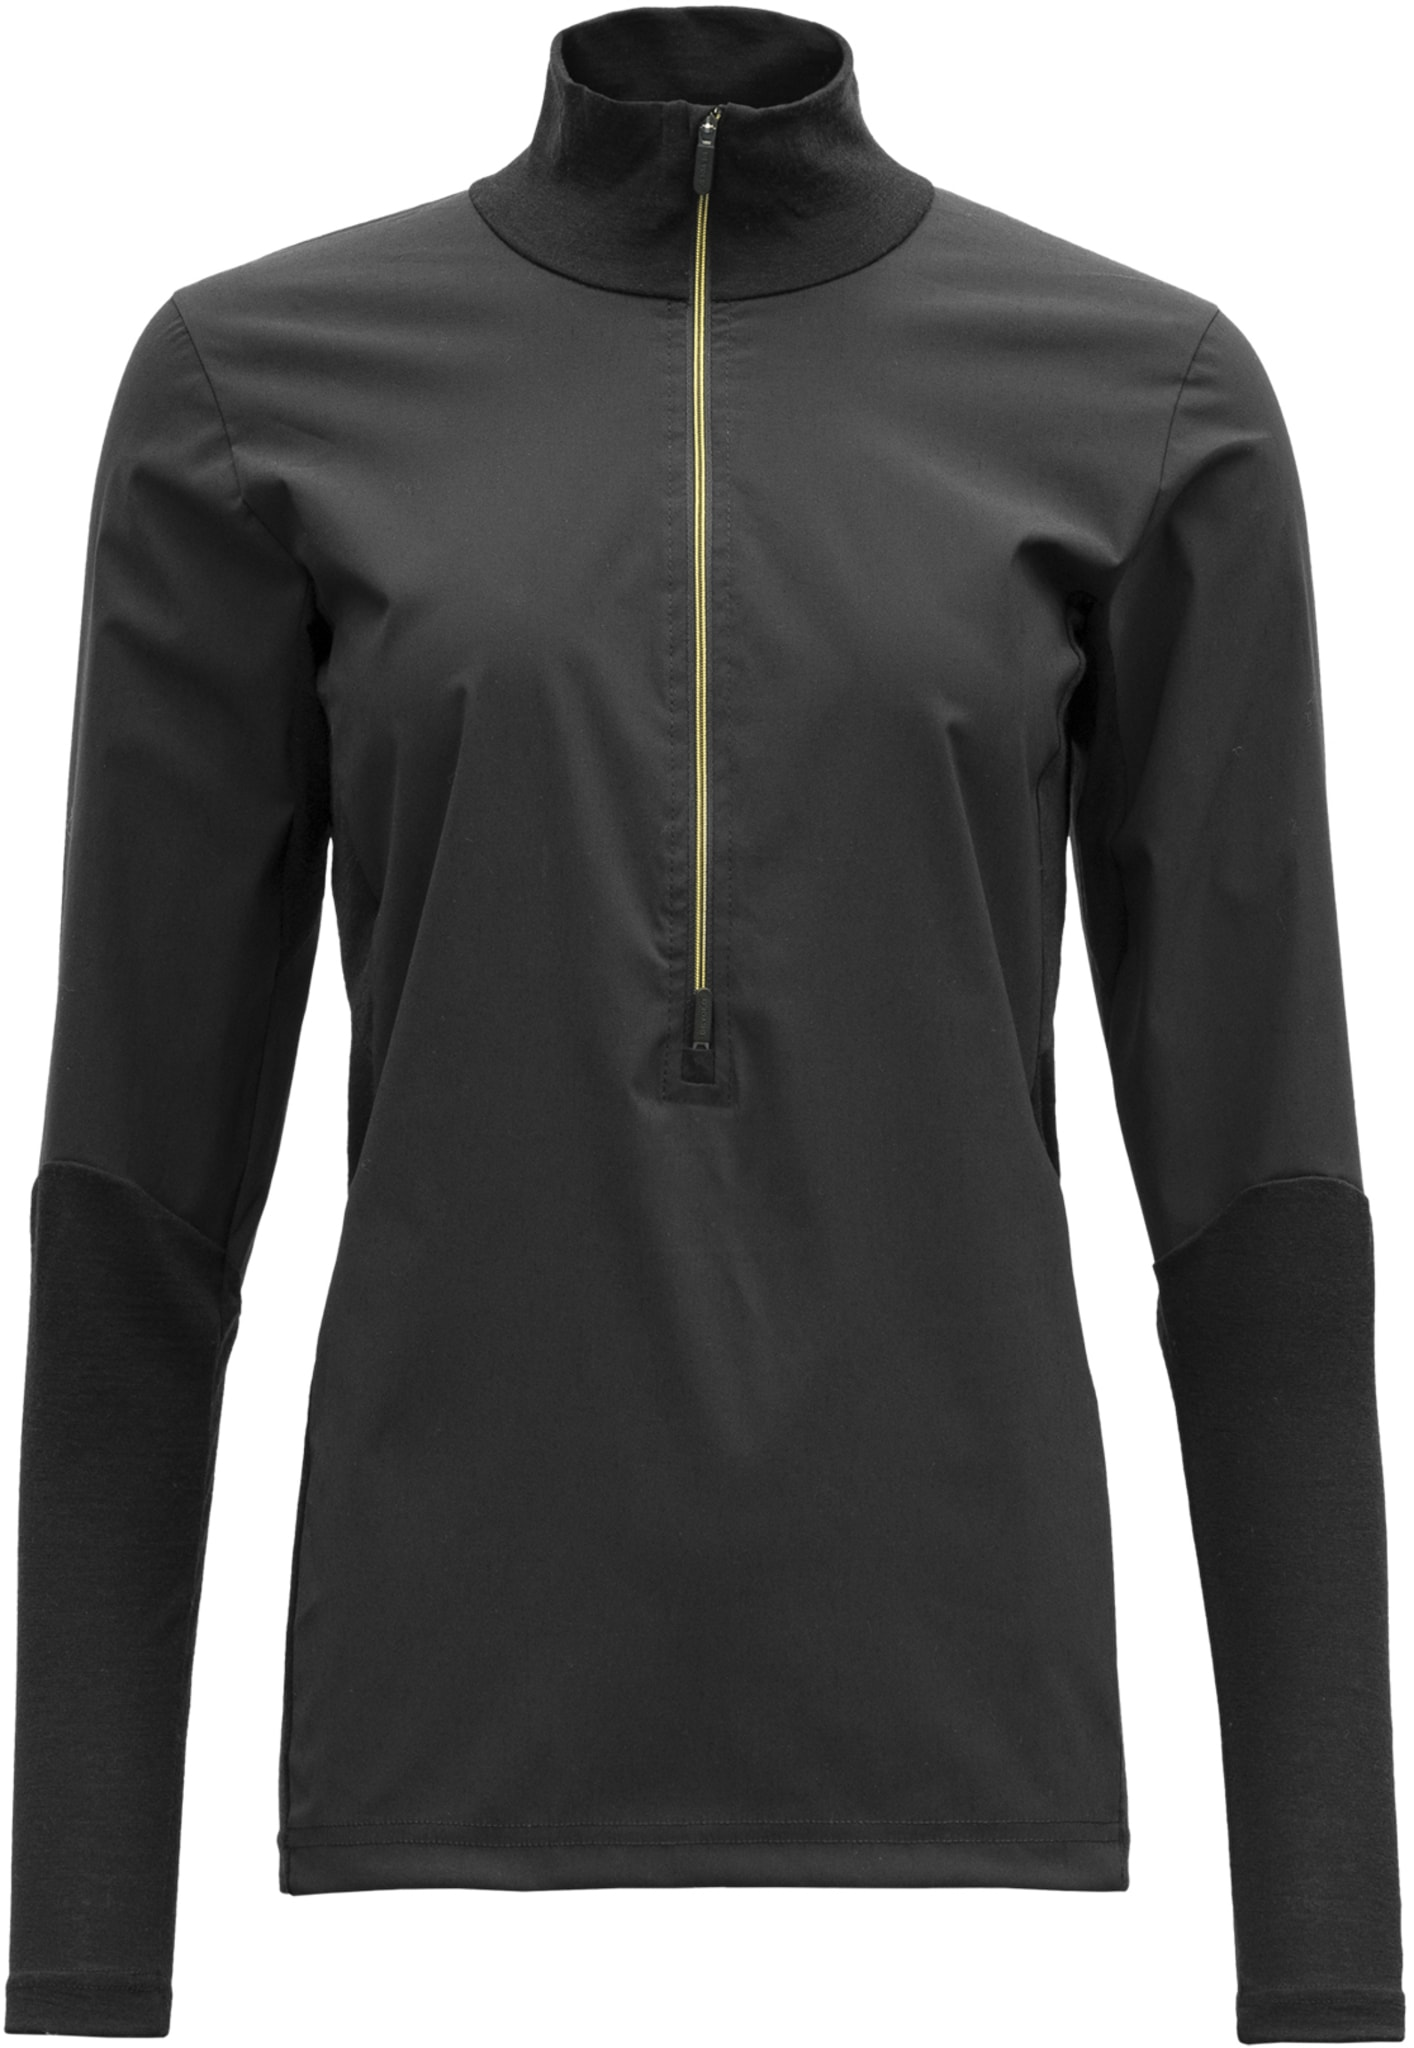 Running Cover Woman Zip Neck